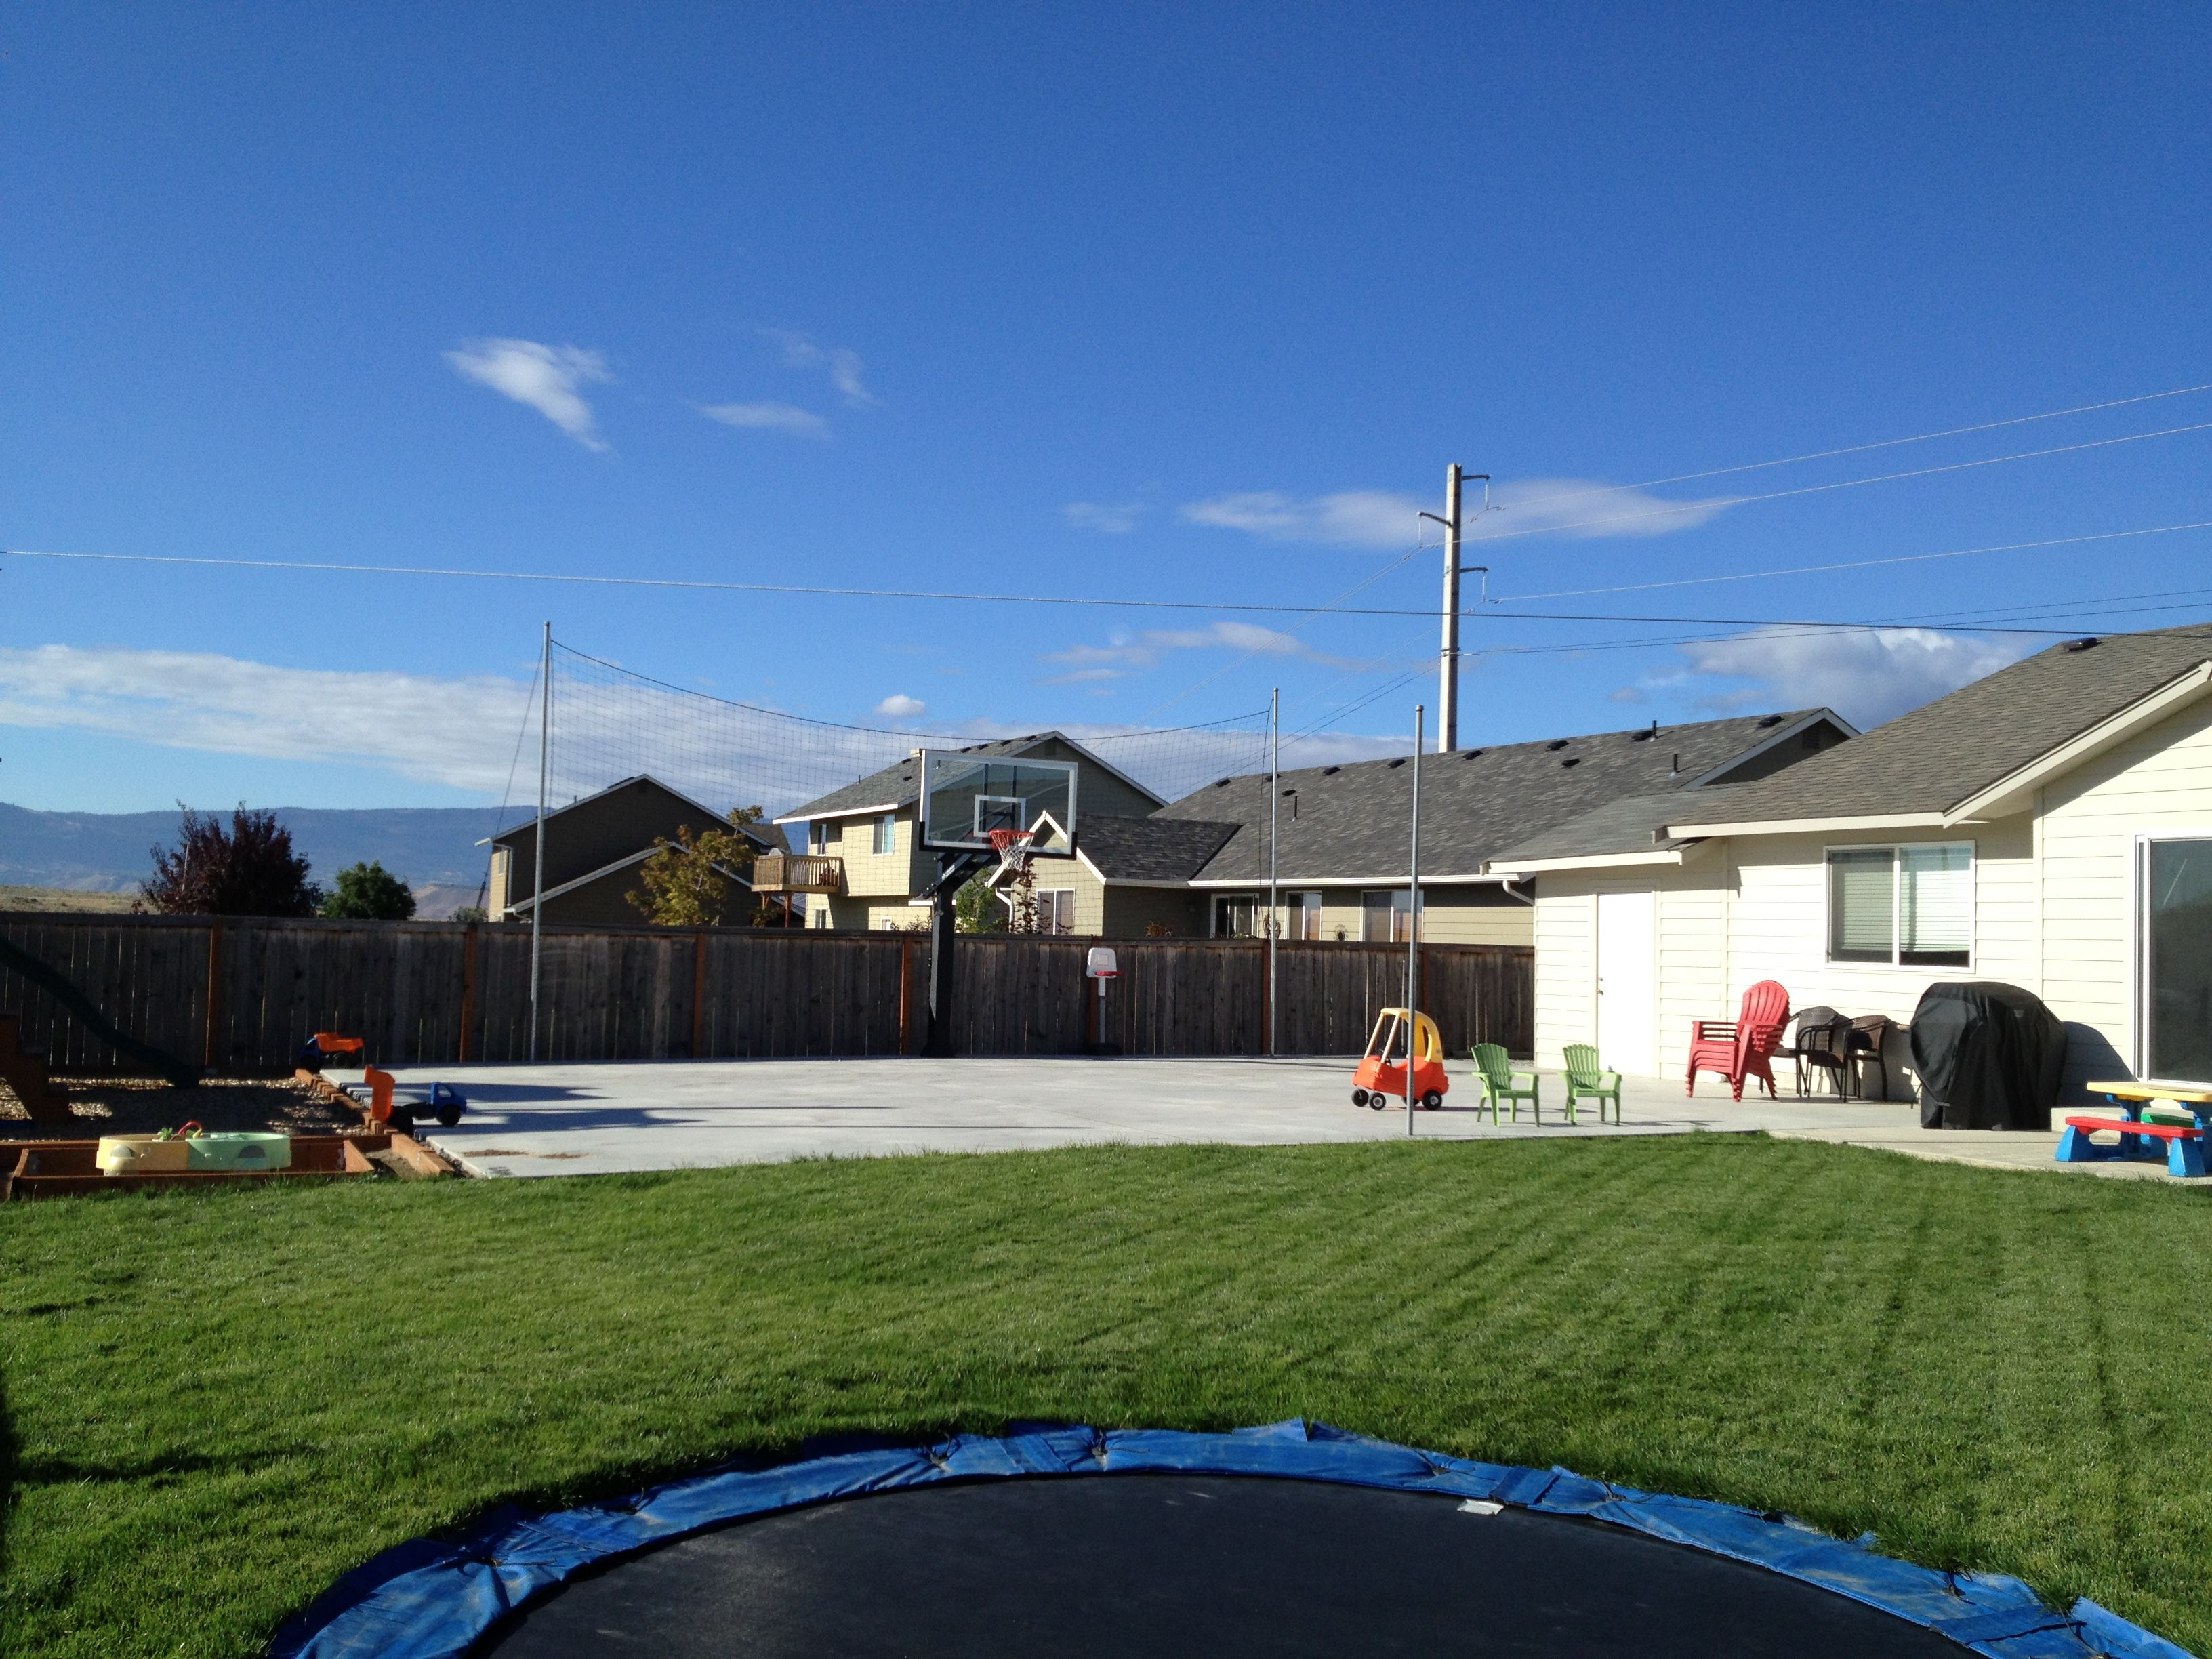 there is another wide view of their backyard pro dunk hoops